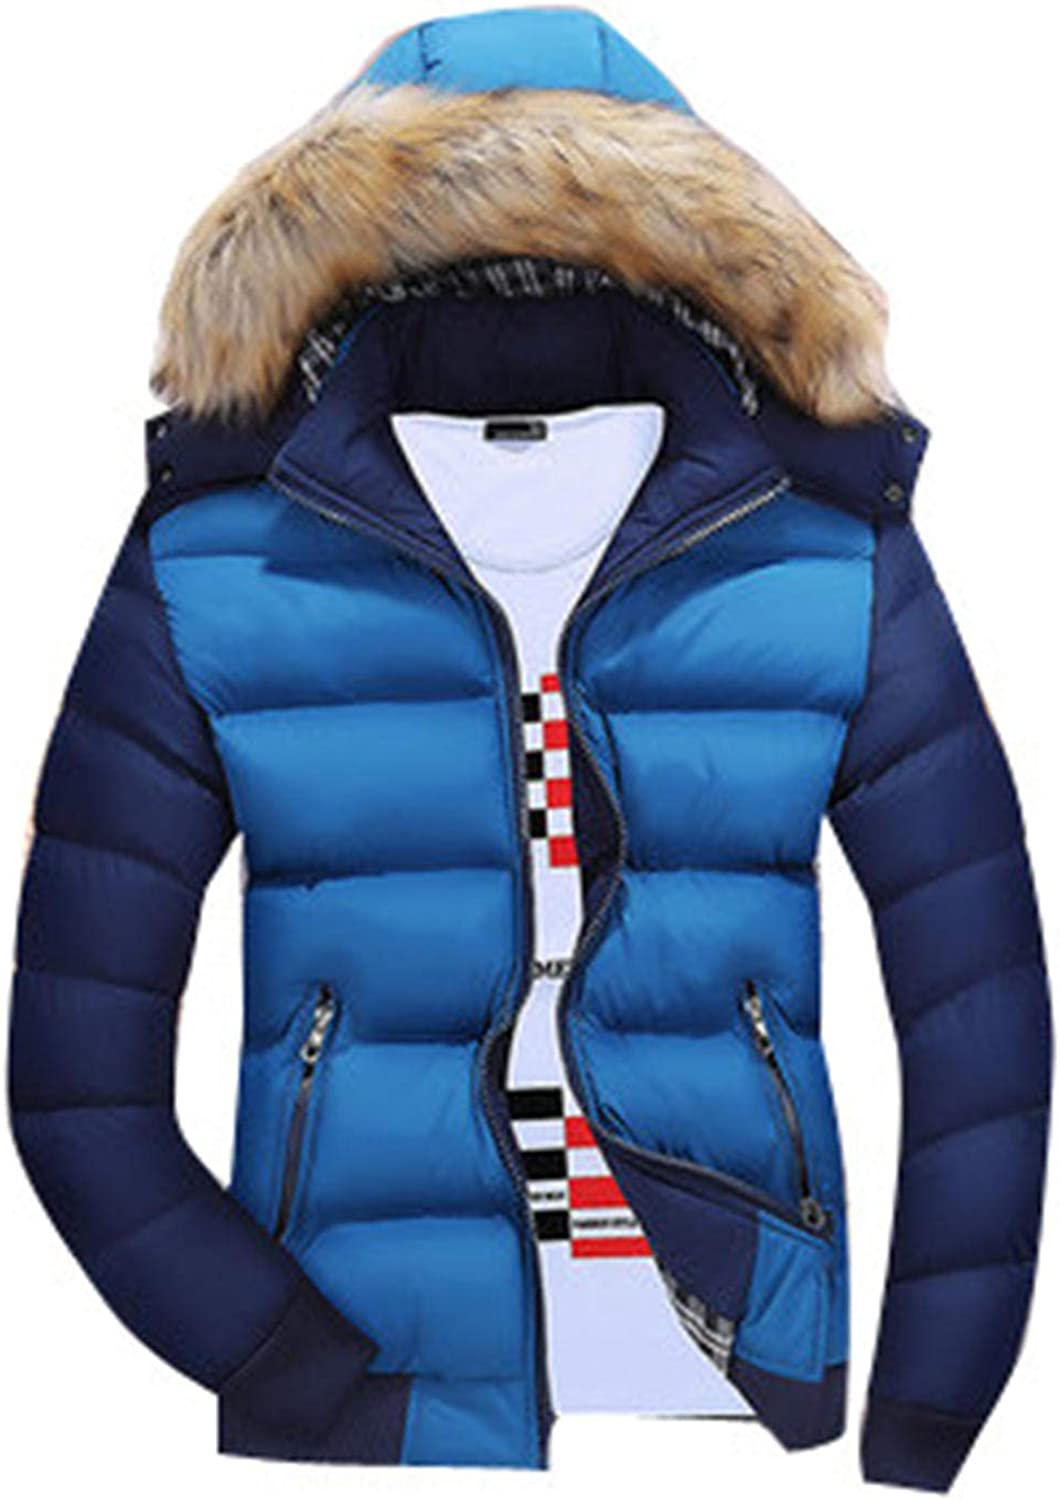 Soluo Men's Winter Thicken Coat Faux Fur Lined Jacket with Removable Hood Outerwear Overcoat